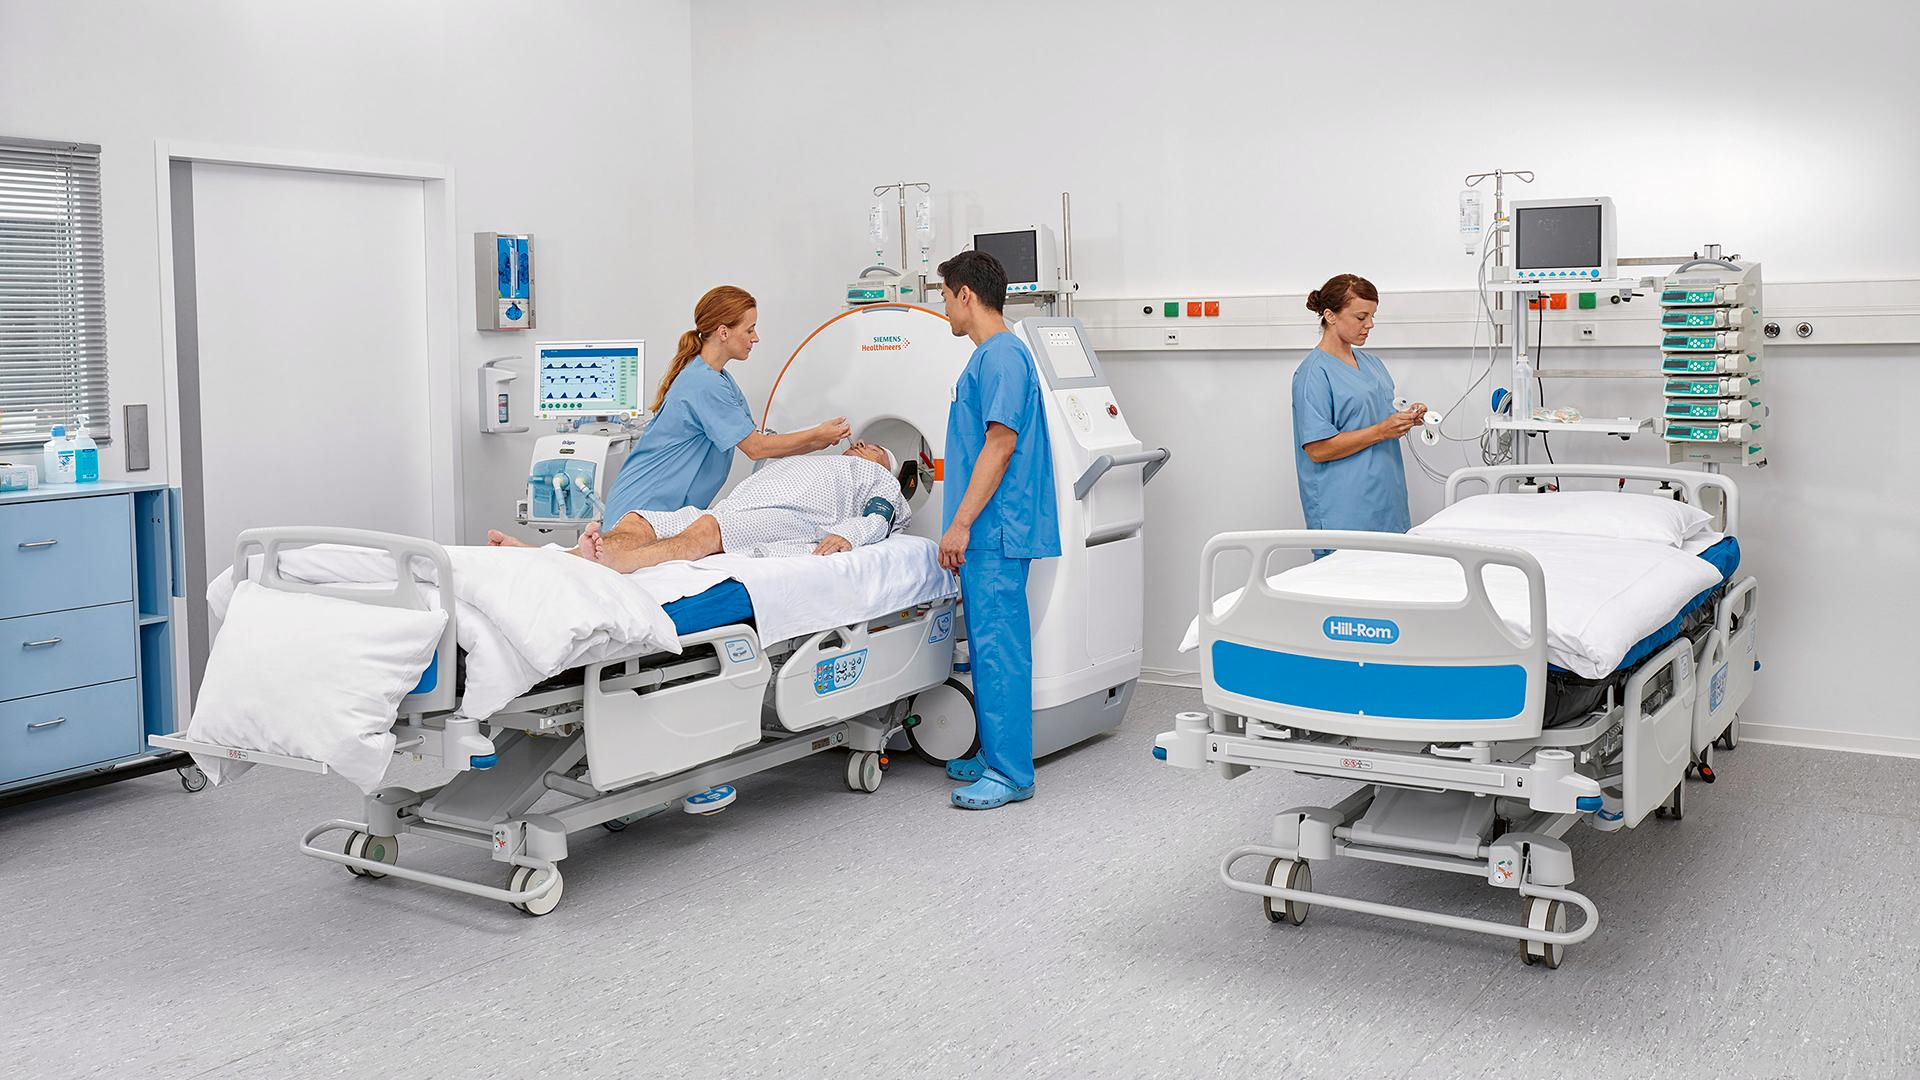 CT scanning in the ICU can reduce transportation risks.